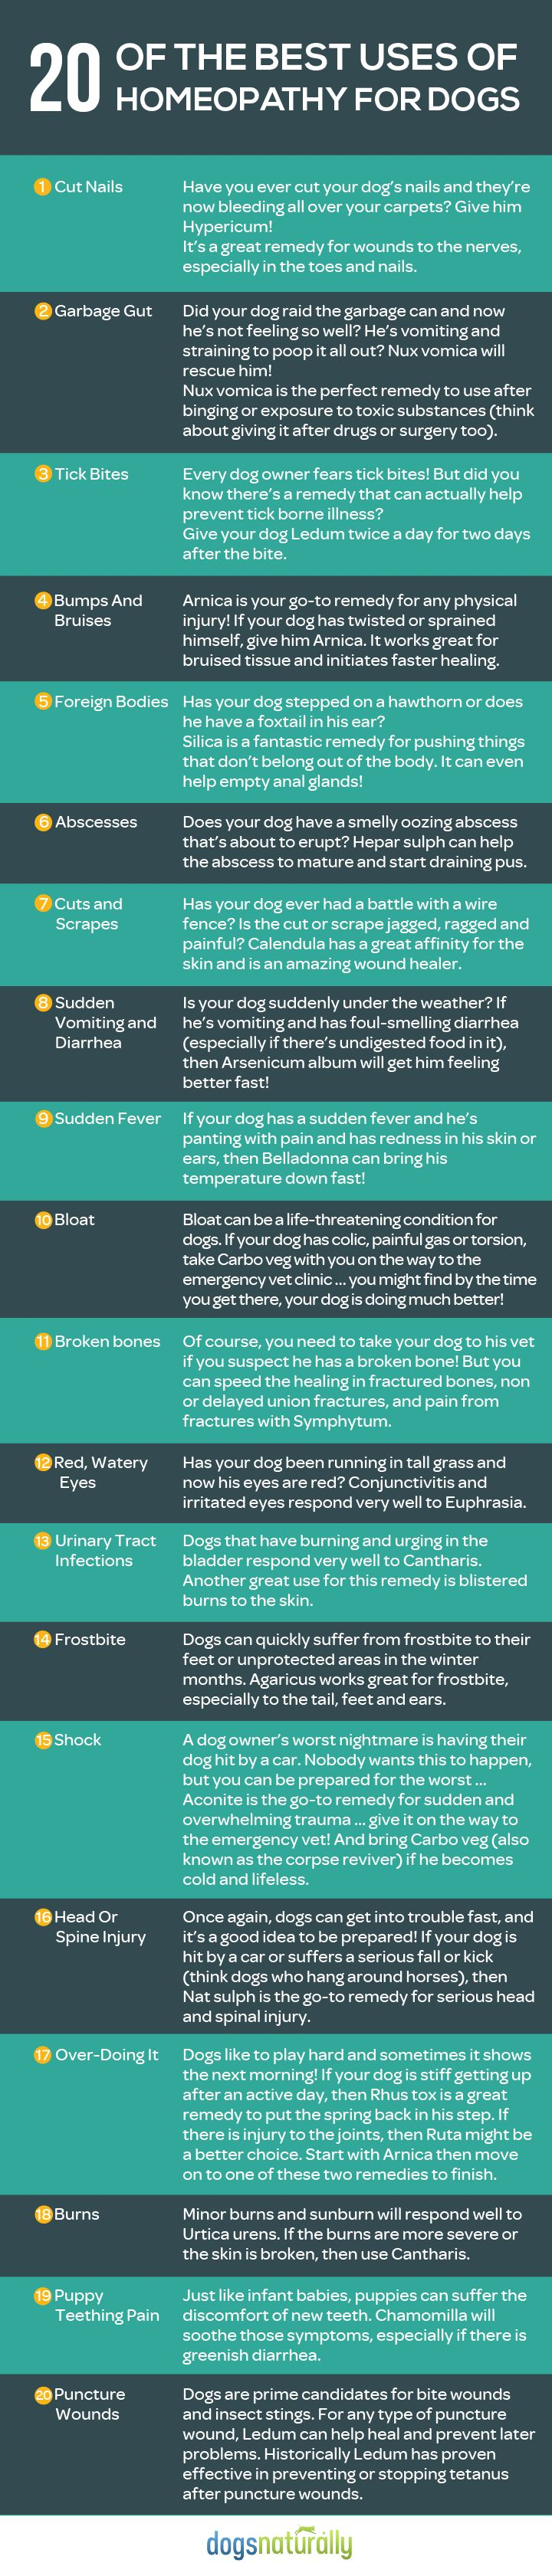 20 Natural Homeopathic Remedies for Dogs, how to administer & how much to give (in full article)